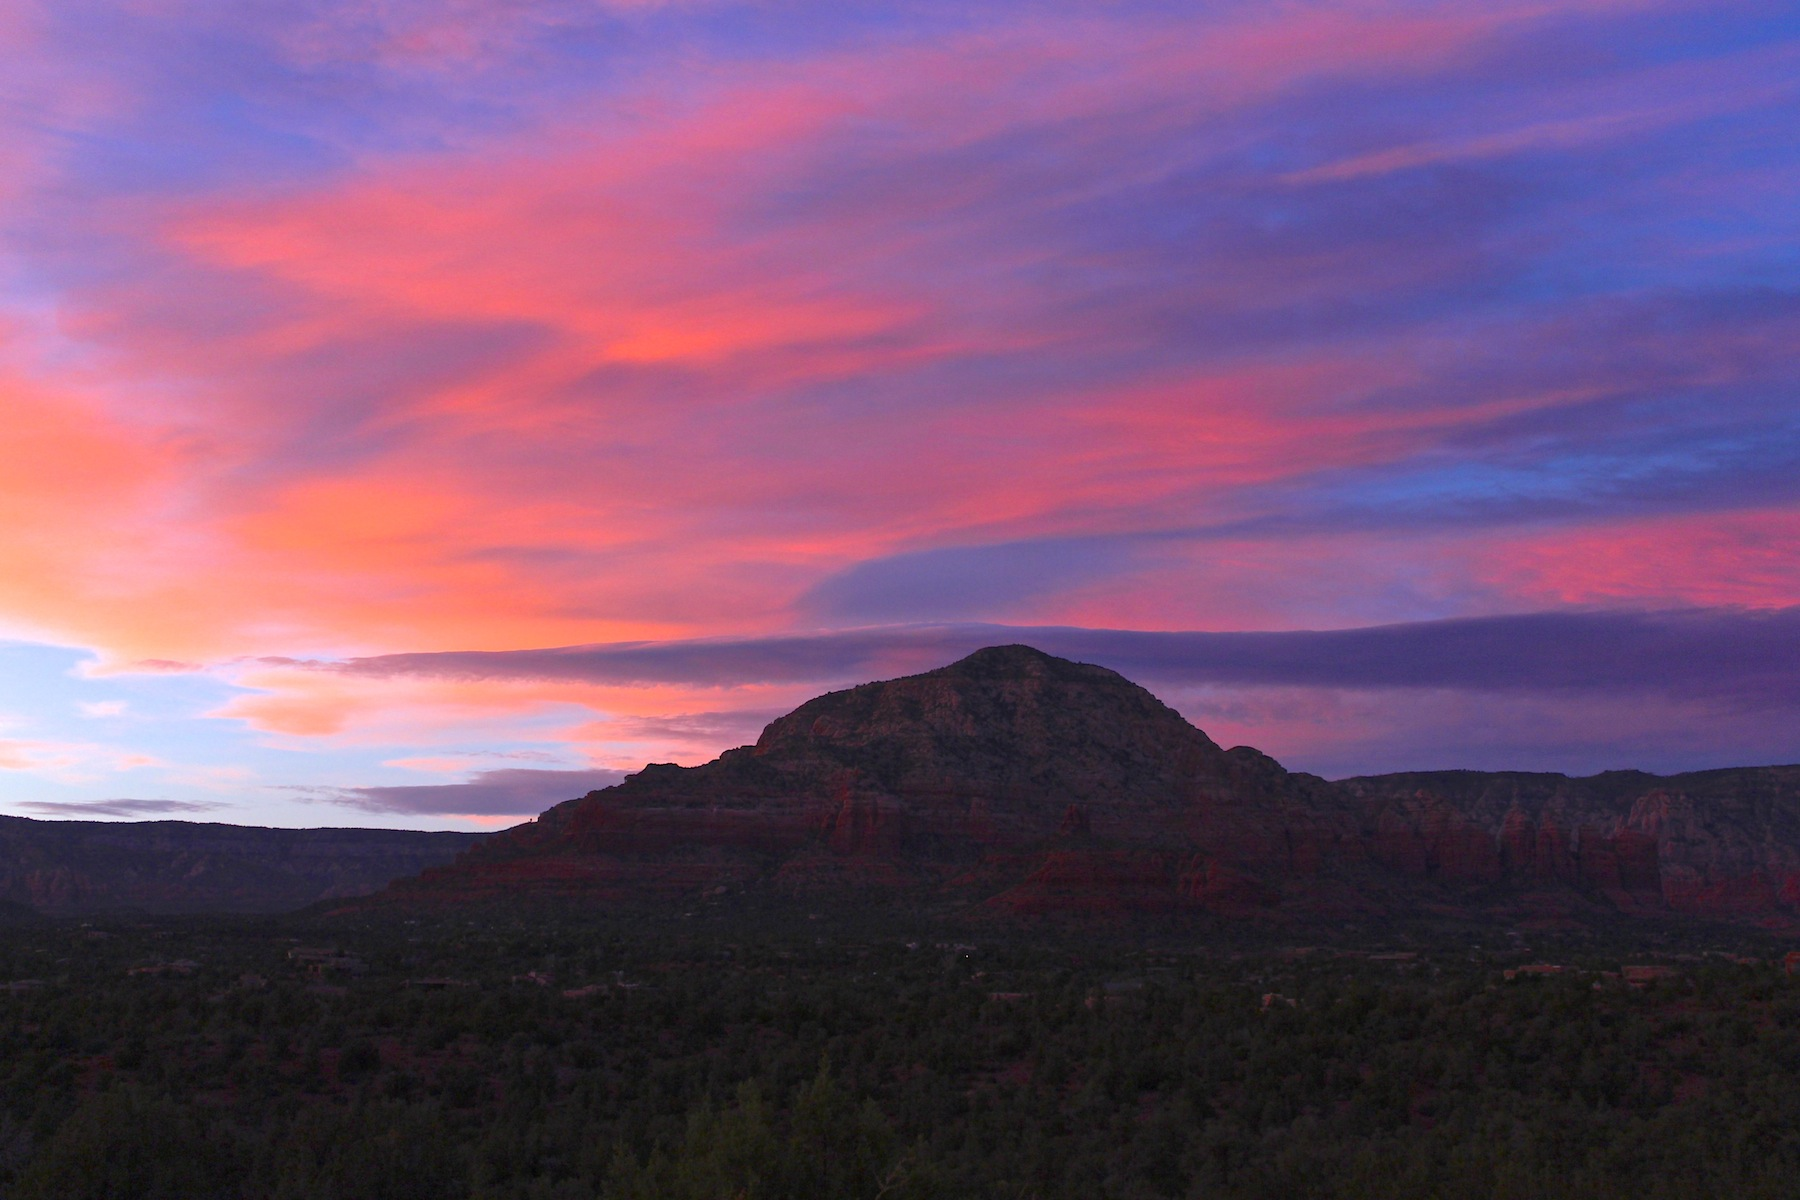 """Aridity Meets Divinity"" in Sedona, Arizona"